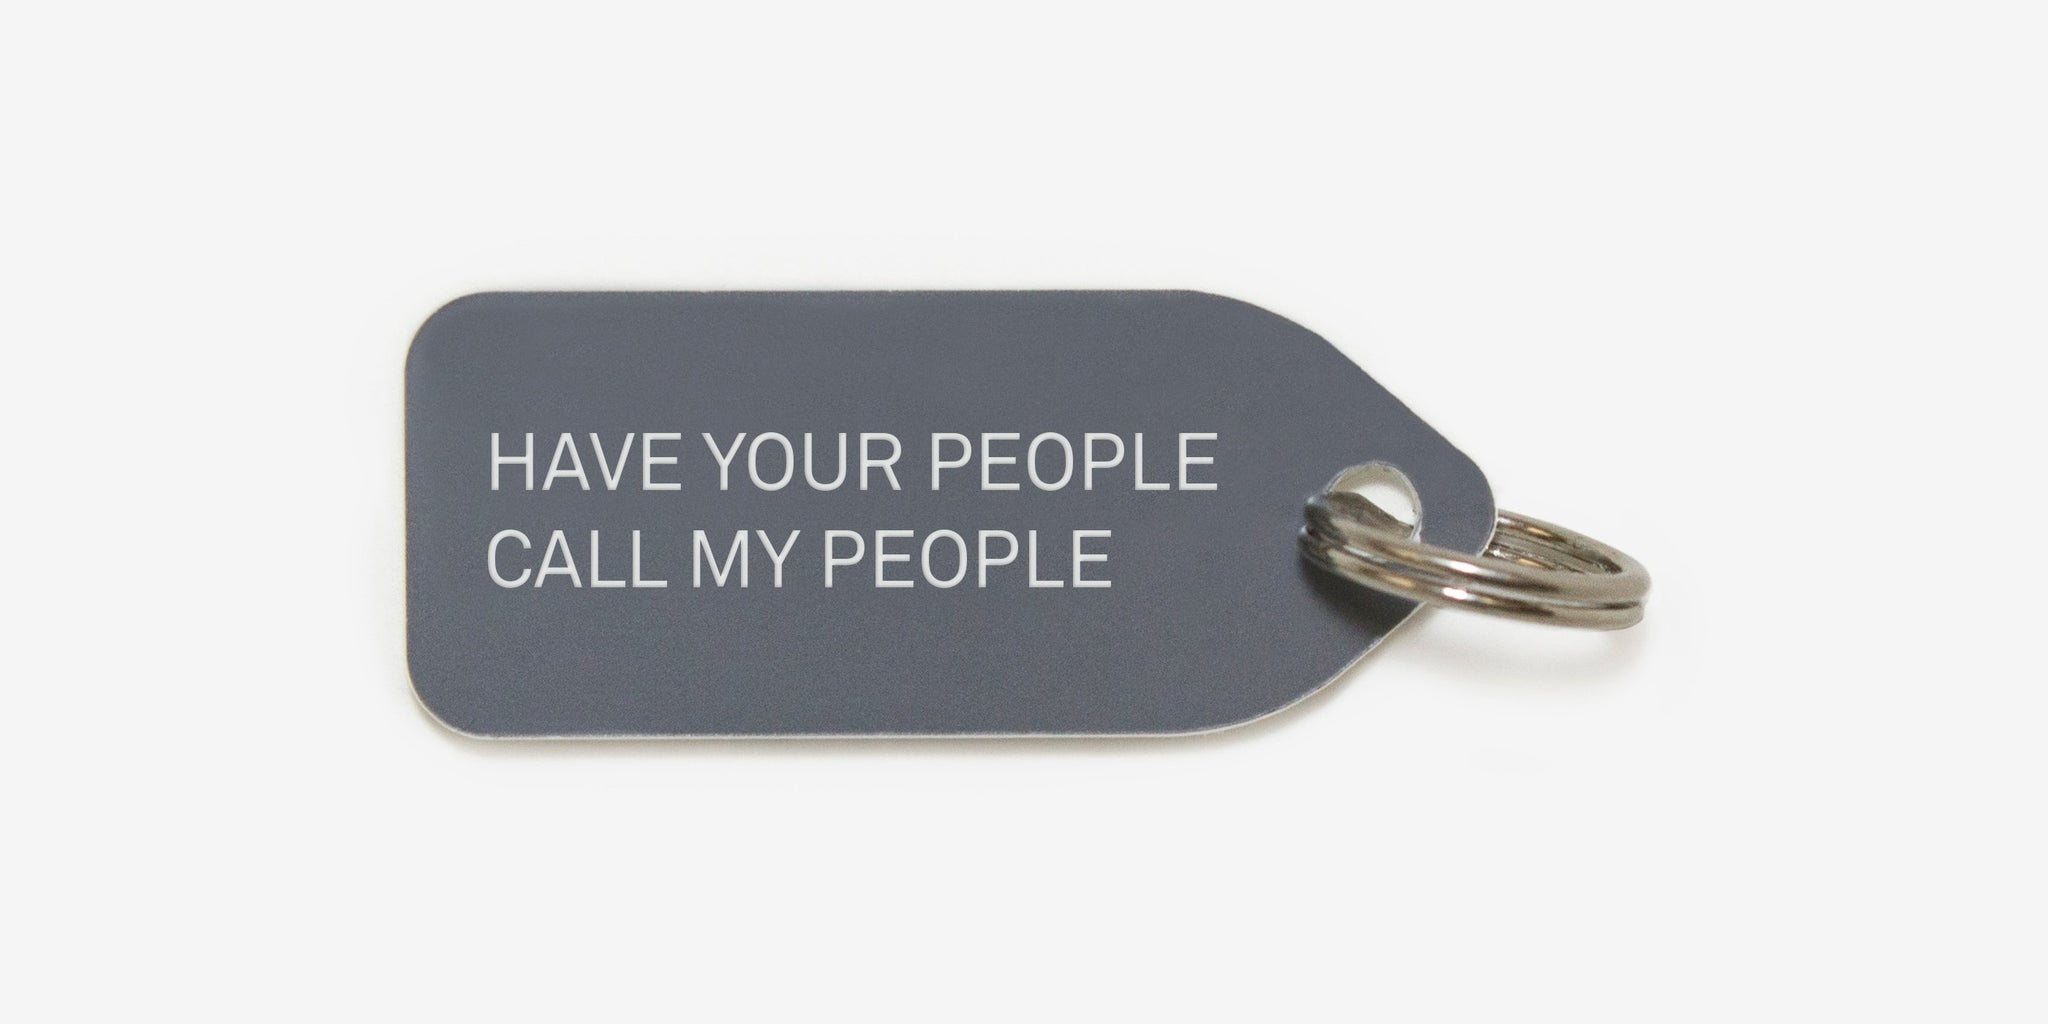 Have your people call my people | dog tag | collar charm |